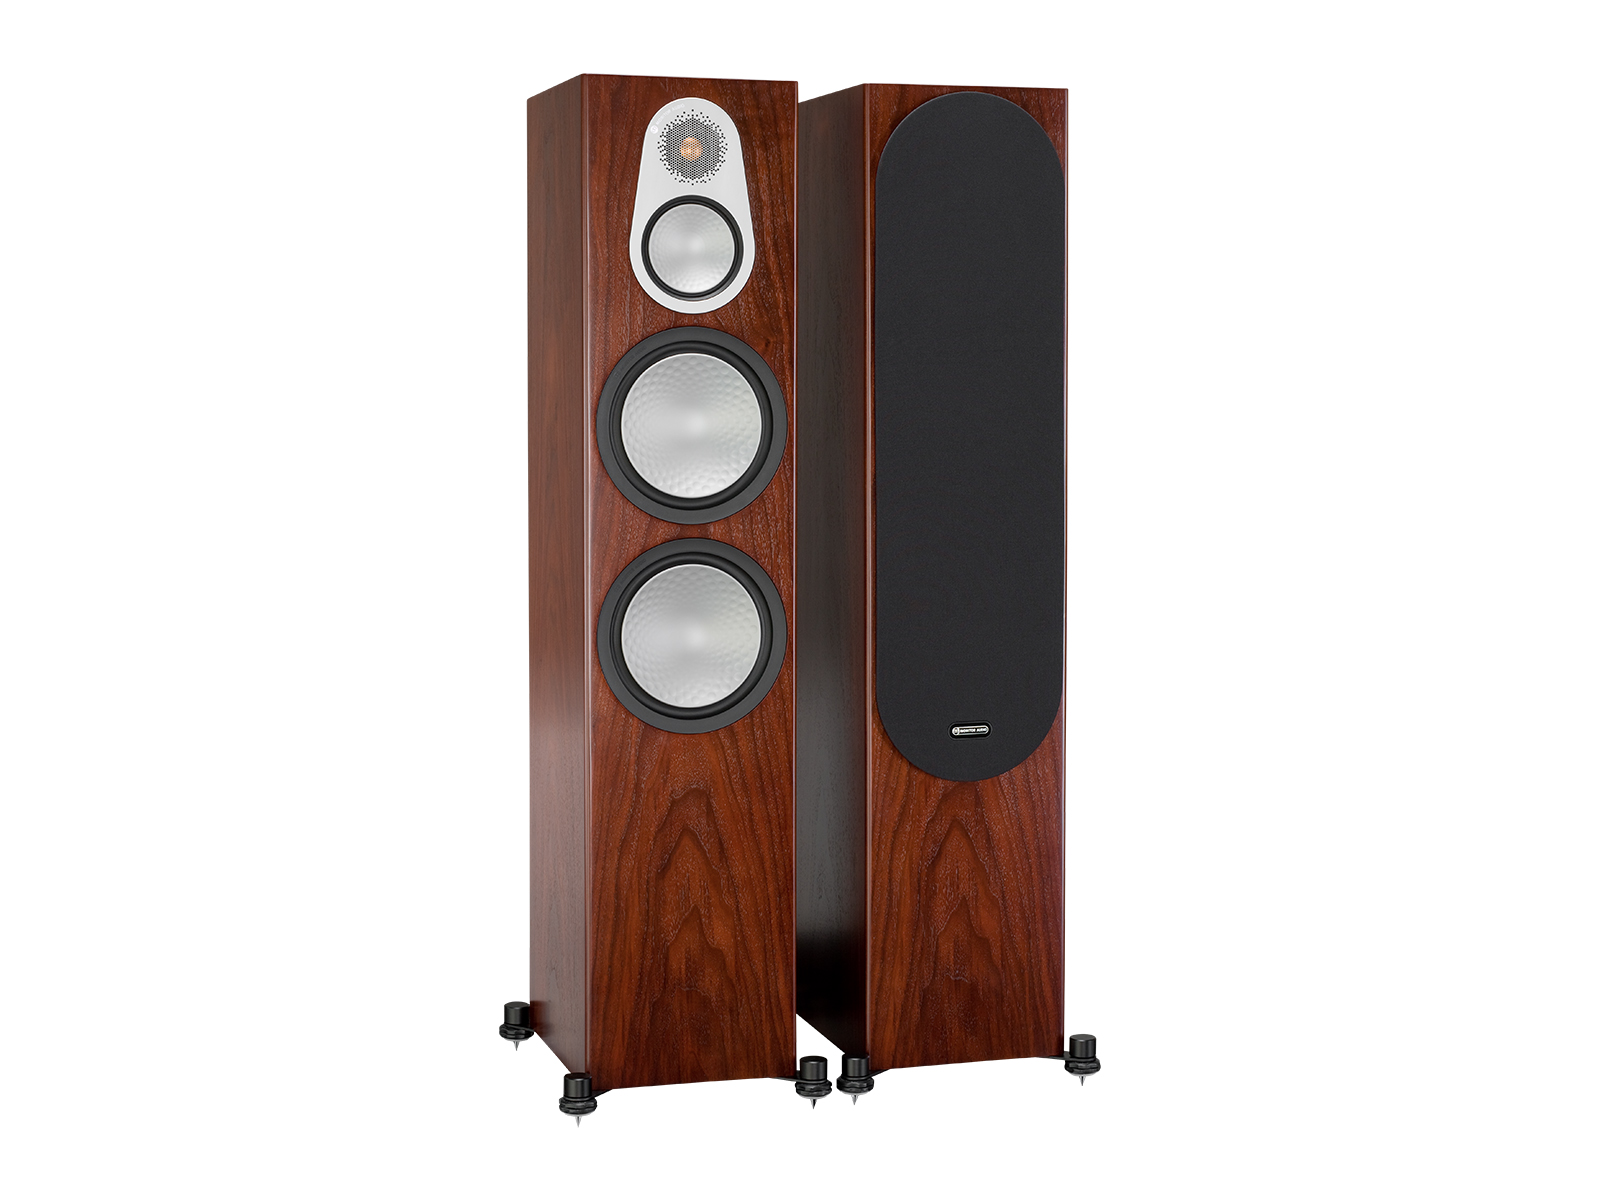 Silver 500, floorstanding speakers, with and without grille in a walnut finish.